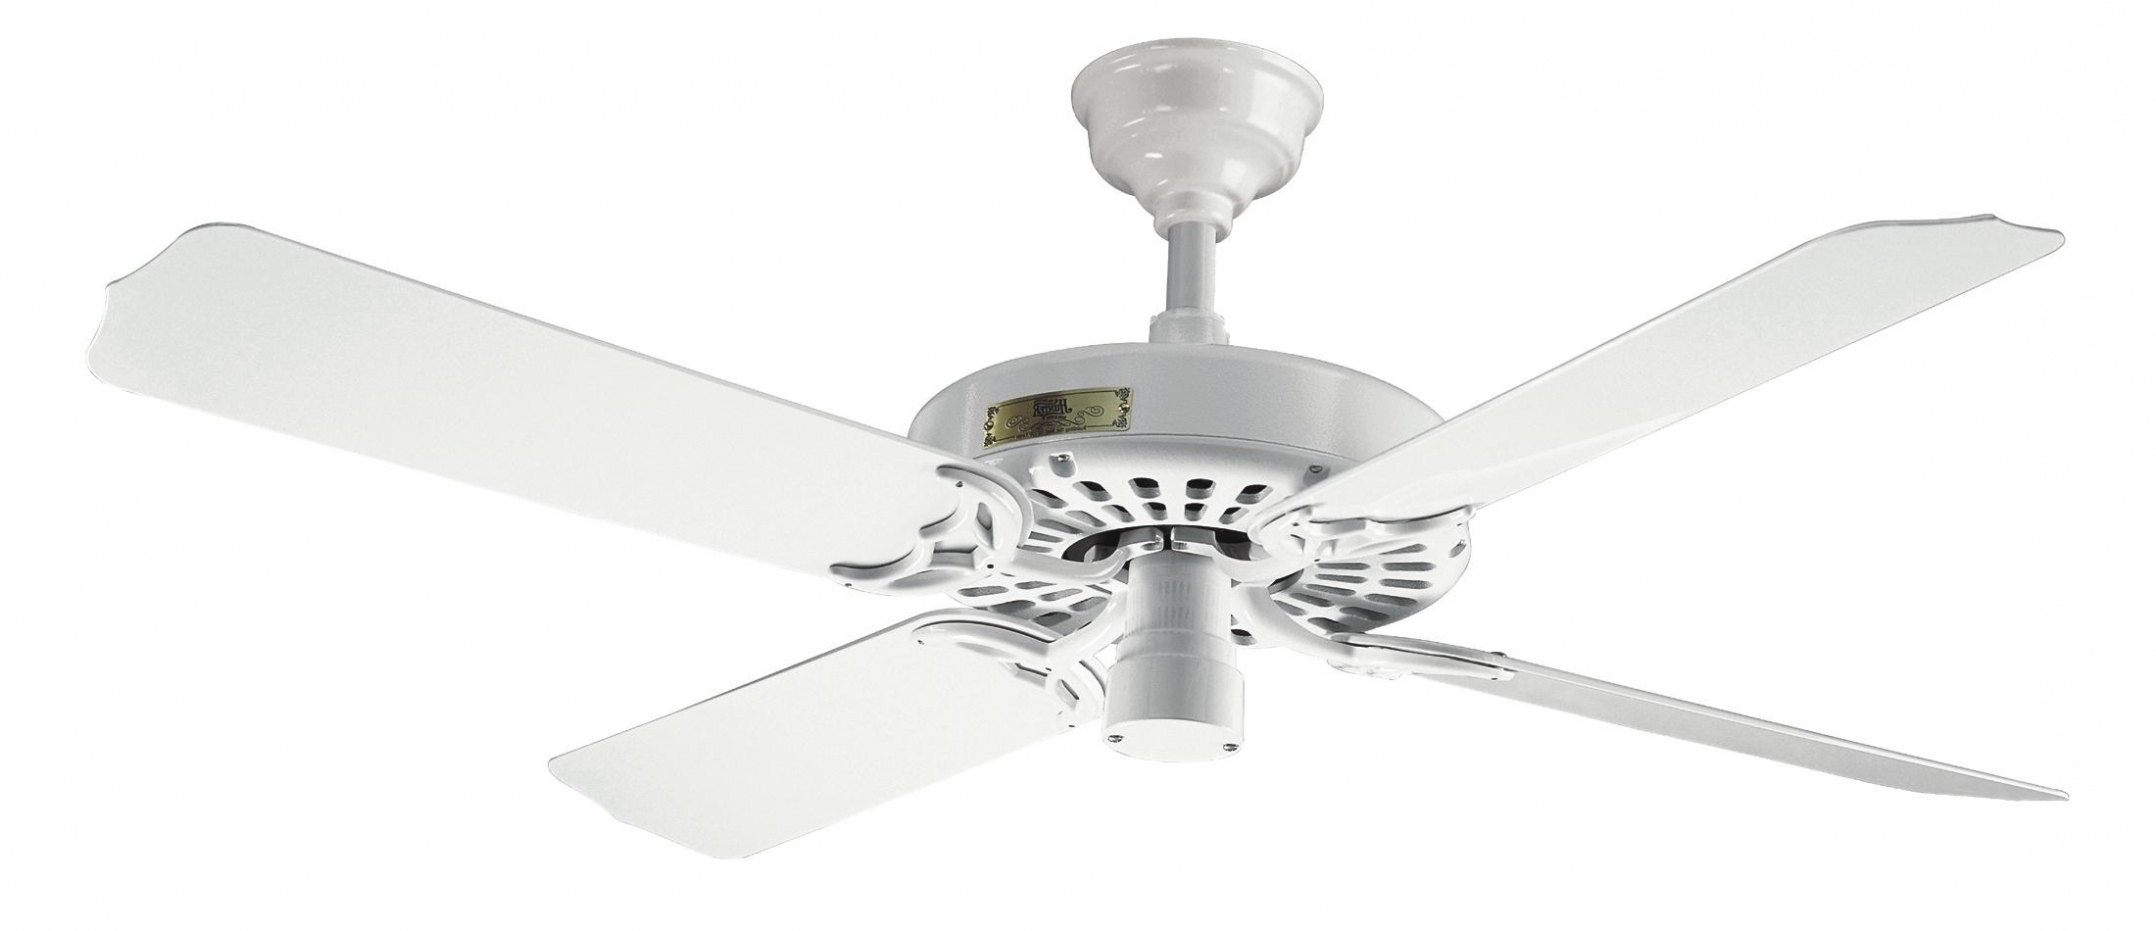 Hunter Outdoor Ceiling Fans With Lights And Remote – Outdoor Lighting Inside Well Liked Hunter Outdoor Ceiling Fans With Lights And Remote (View 20 of 20)